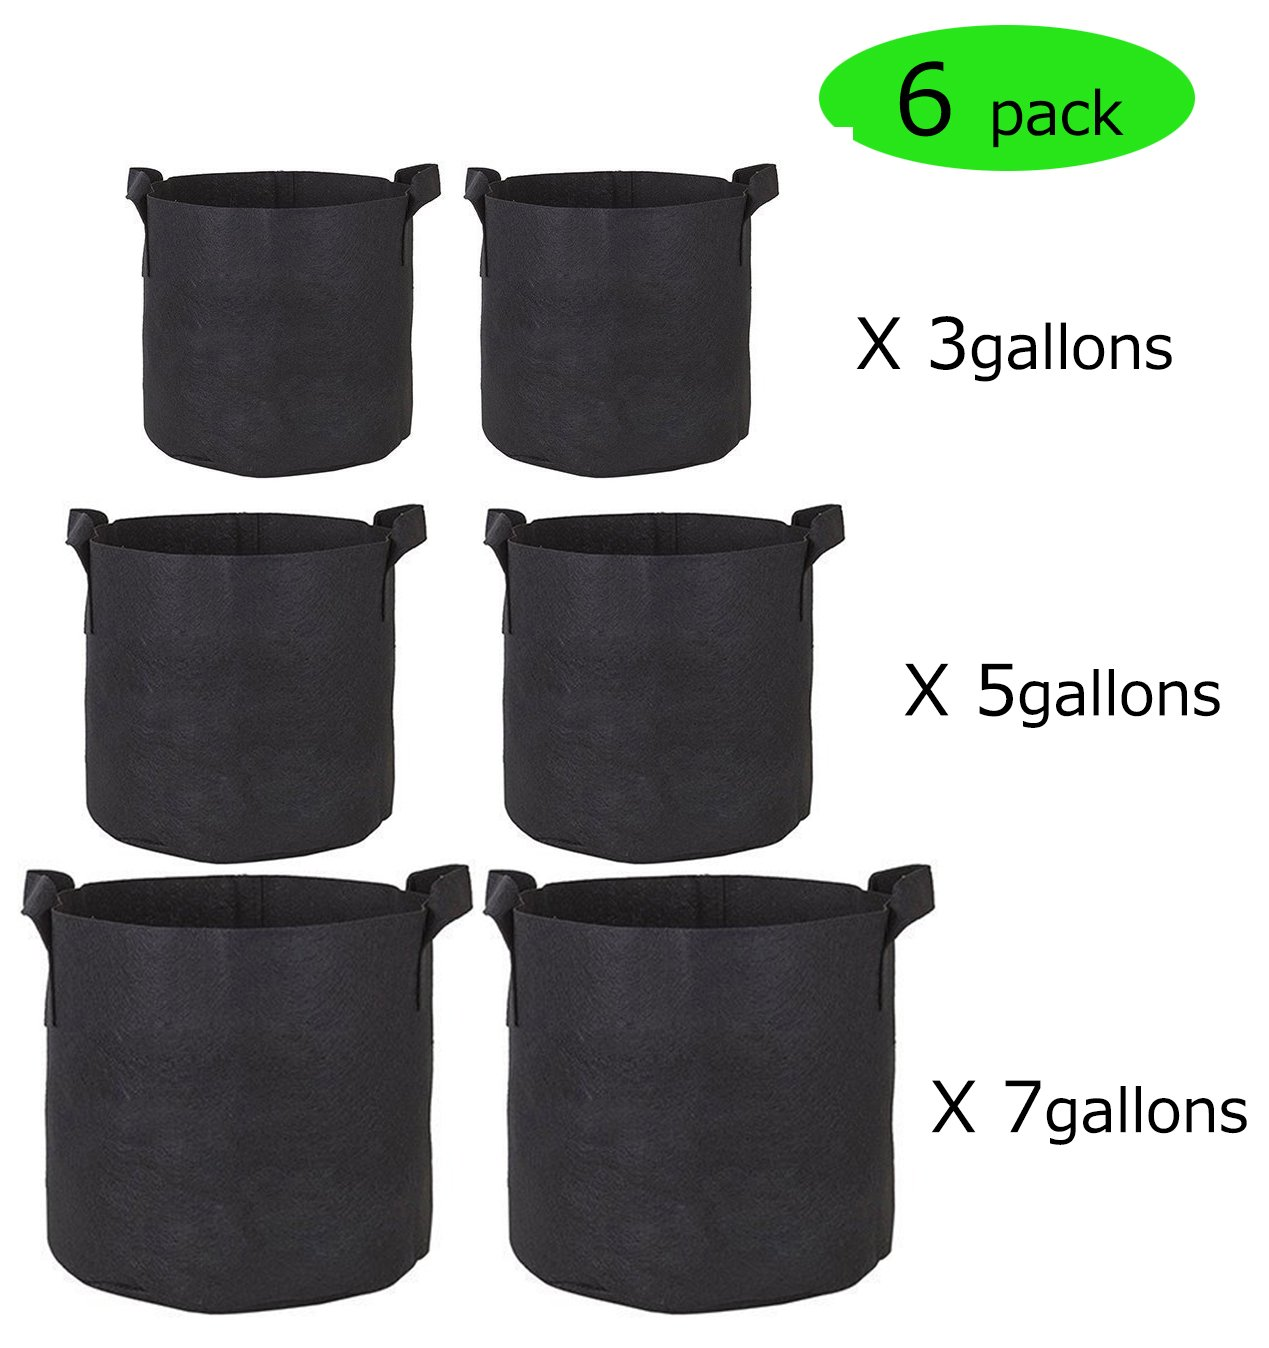 3 Gallon 5 Gallon 7 Gallon Grow Bags- 6 Pack Reusable and Durable Fabric Aeration Pots Container with Strap Handles, Perfect for Nursery Garden and Planting